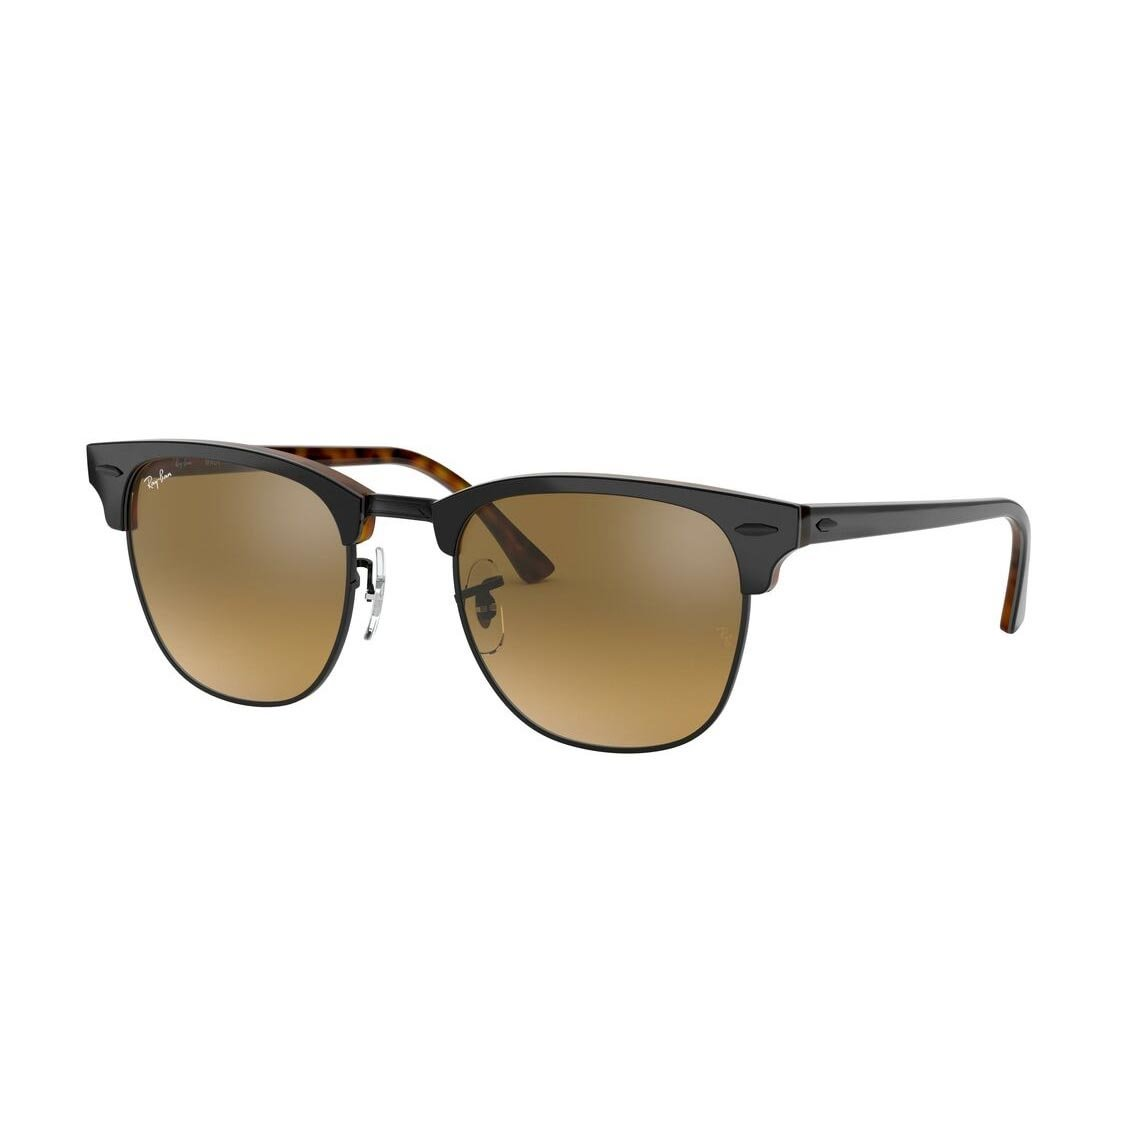 Ray-Ban Clubmaster RB3016 12773K 5121